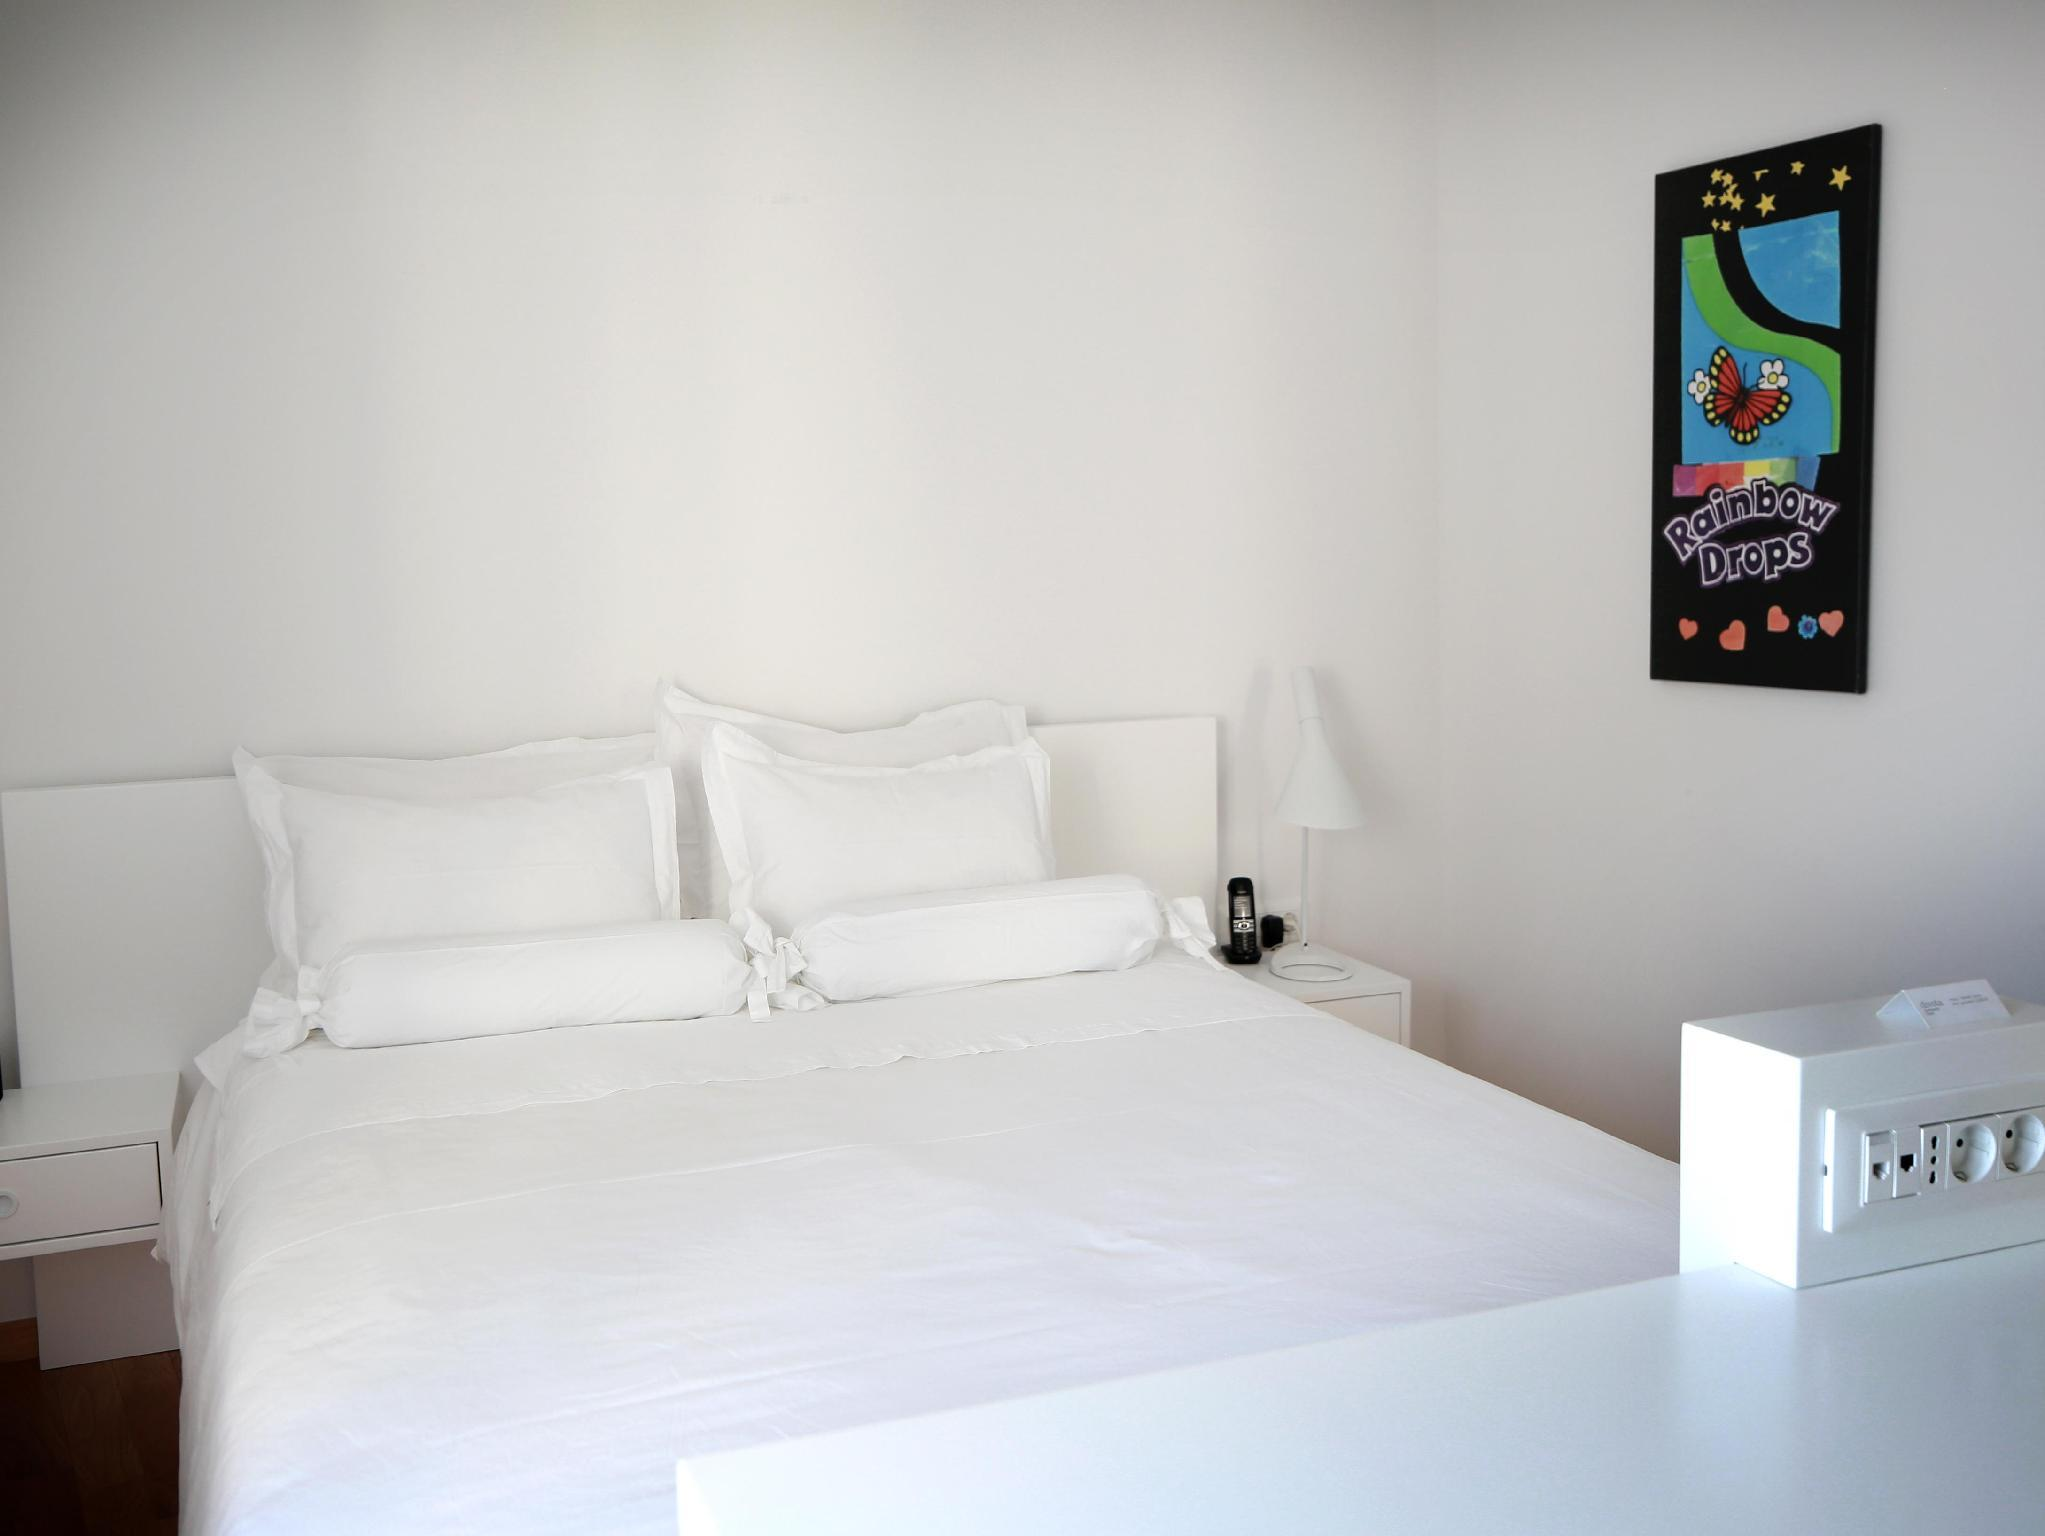 Quarto Duplo Pequeno com varanda (Small Double Room with Balcony)